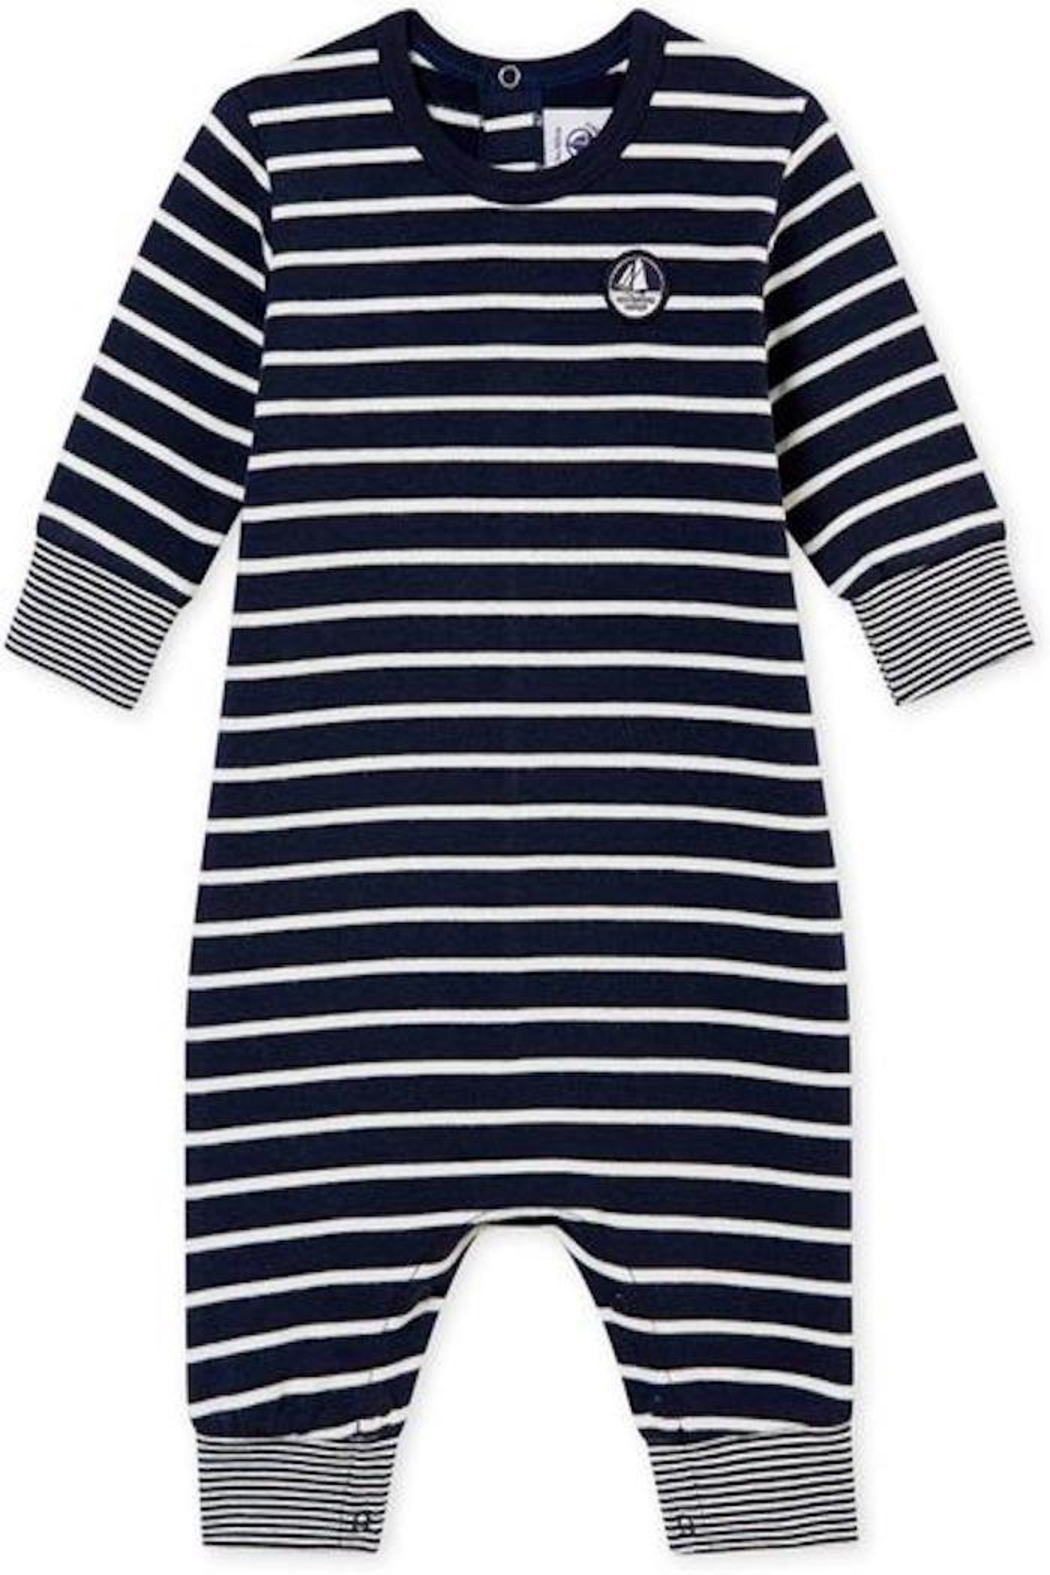 petit bateau Navy Striped Romper - Front Cropped Image